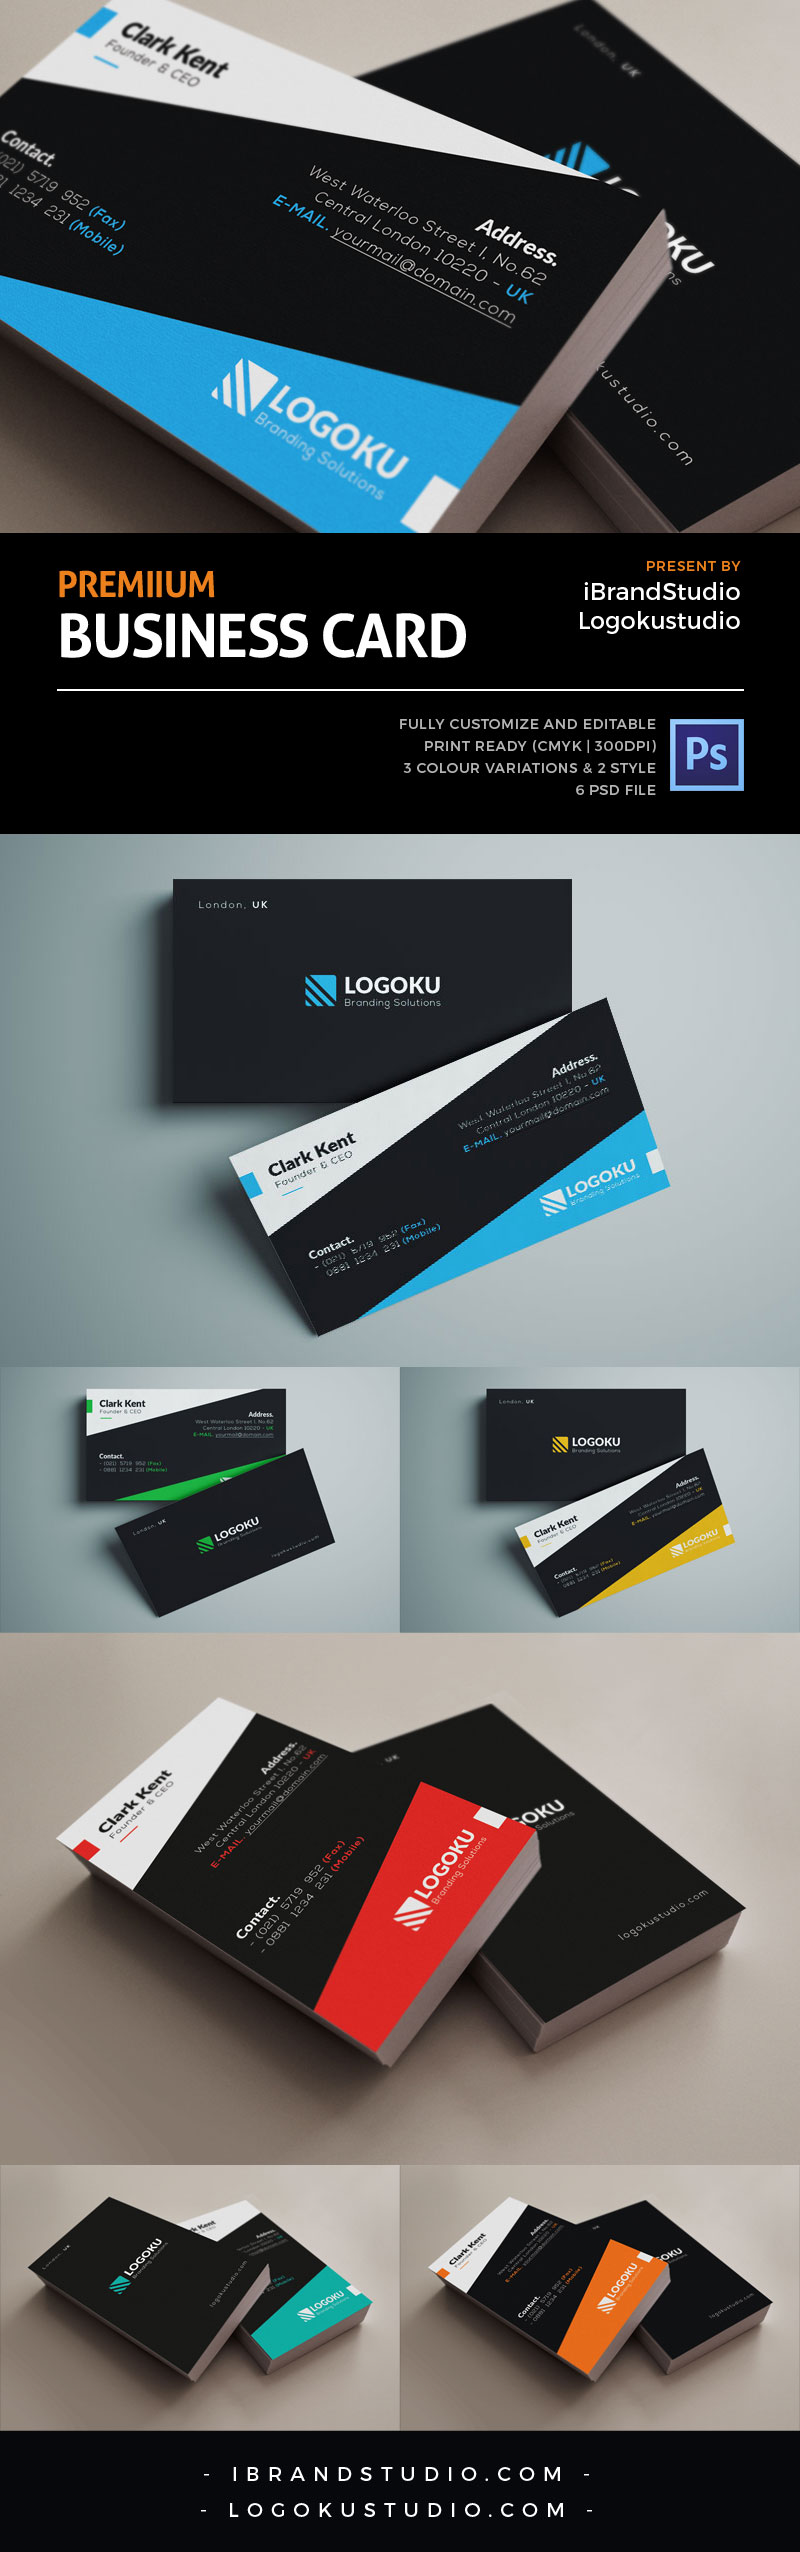 Free Vertical & Horizontal Corporate Business Card Template - iBrandStudio.com